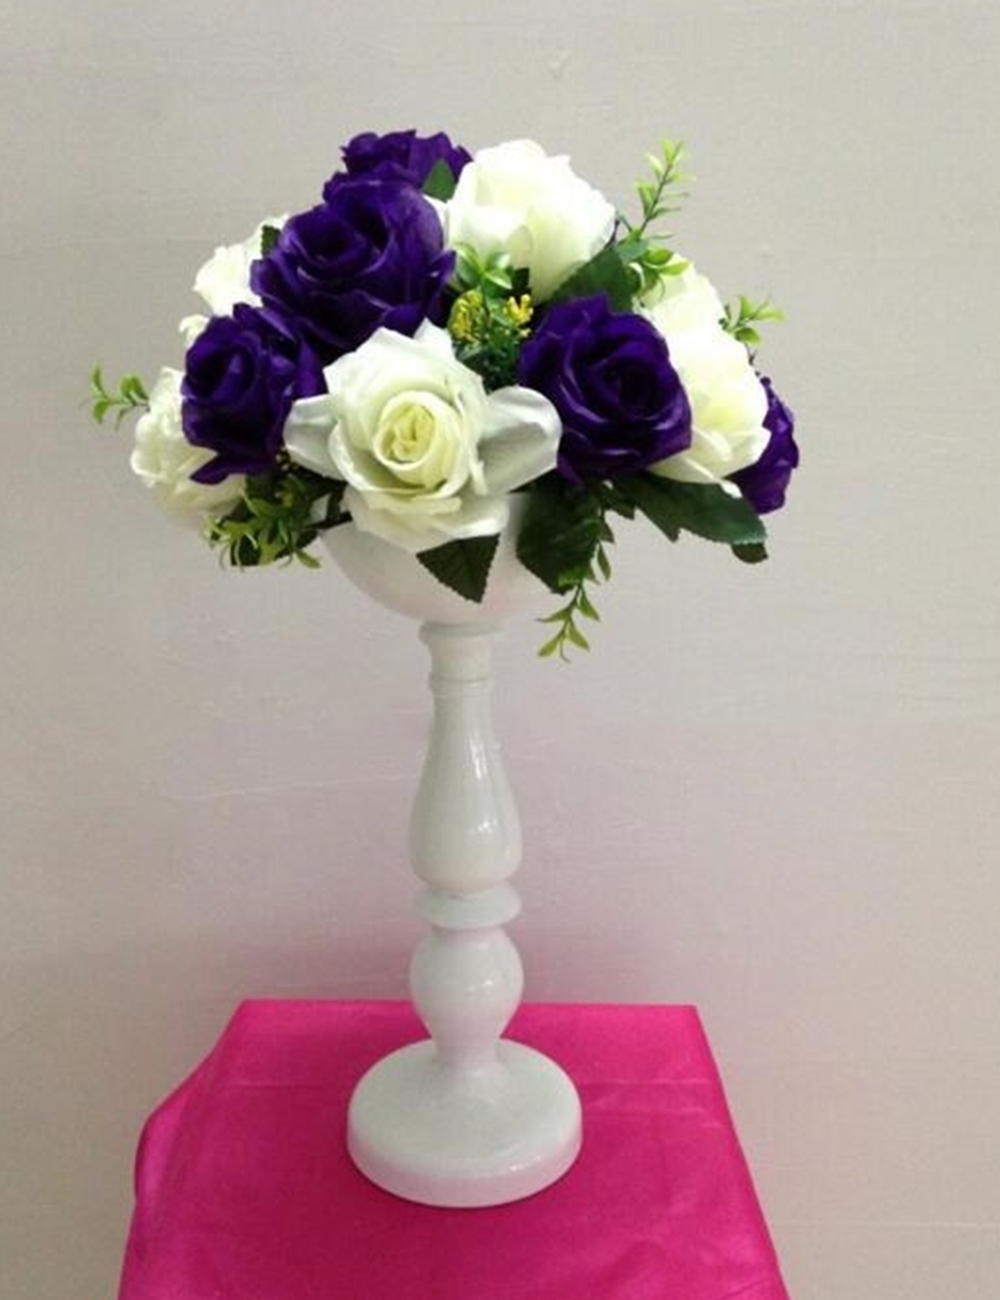 New Arrive 37 Cm Tall White Metal Flower Vase Wedding Table Centerpiece Event Home Decor Hotel